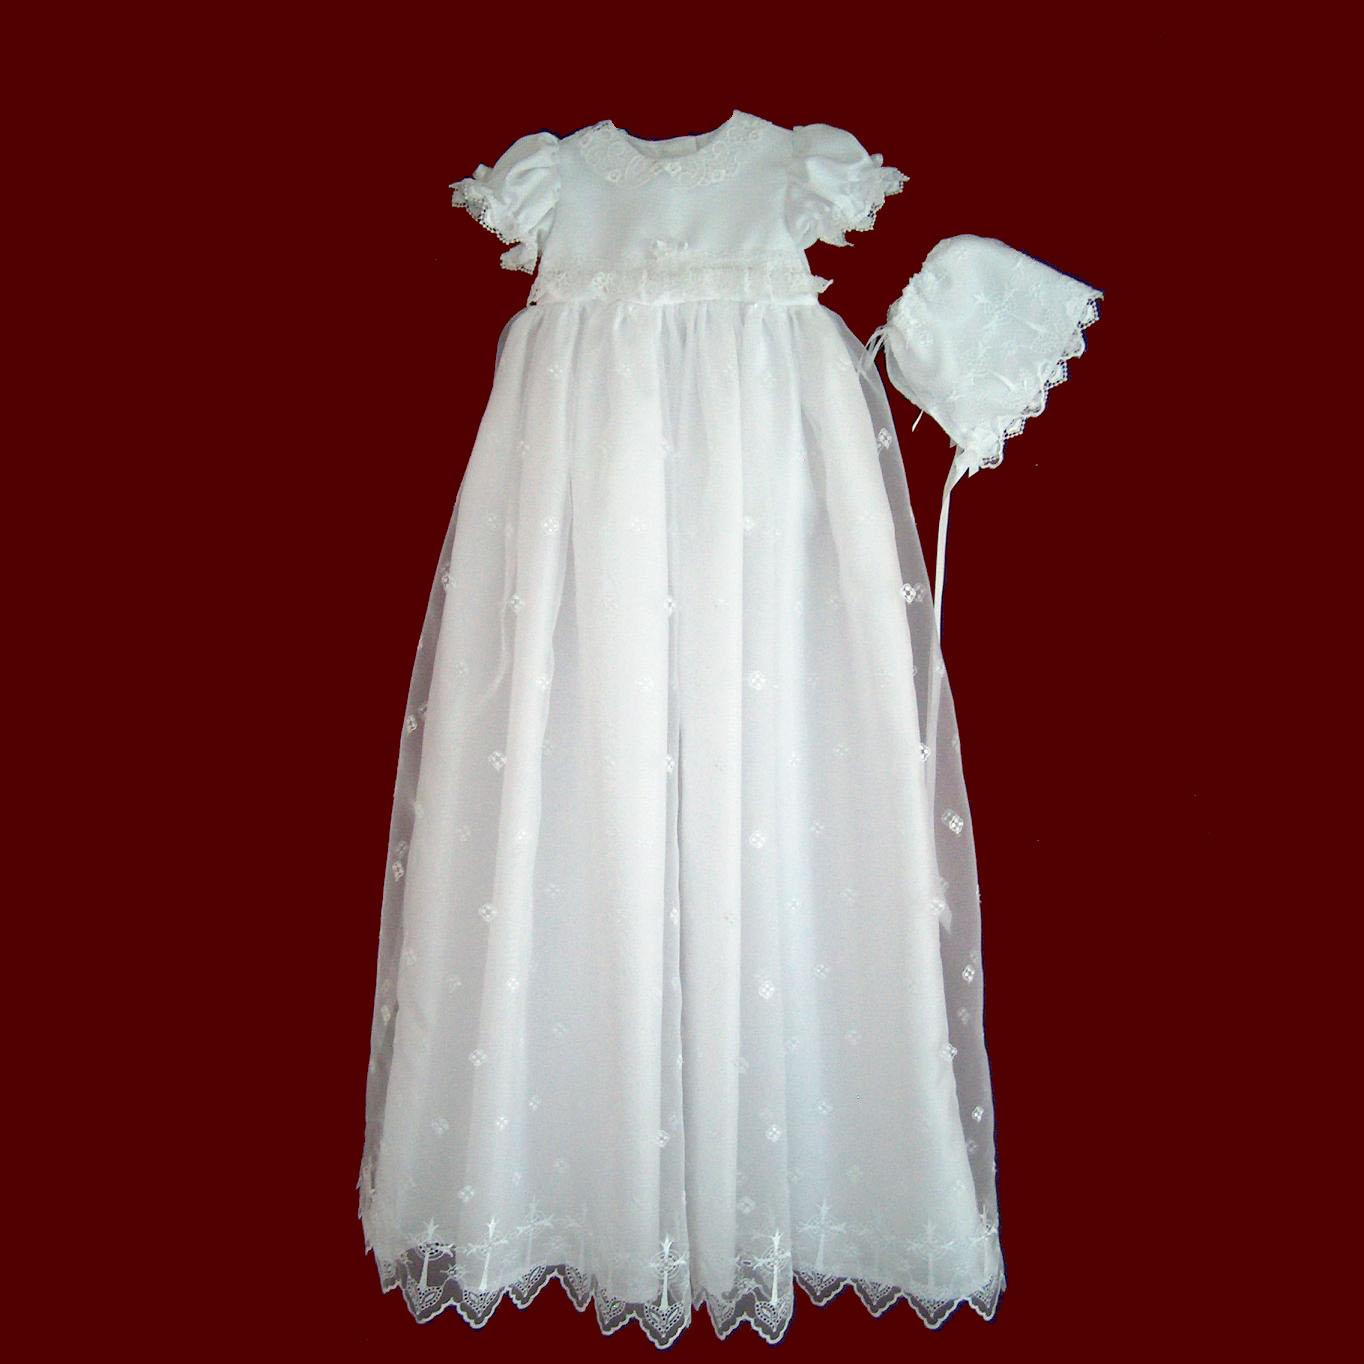 Girls Detachable Christening Gowns - Smocked Treasures